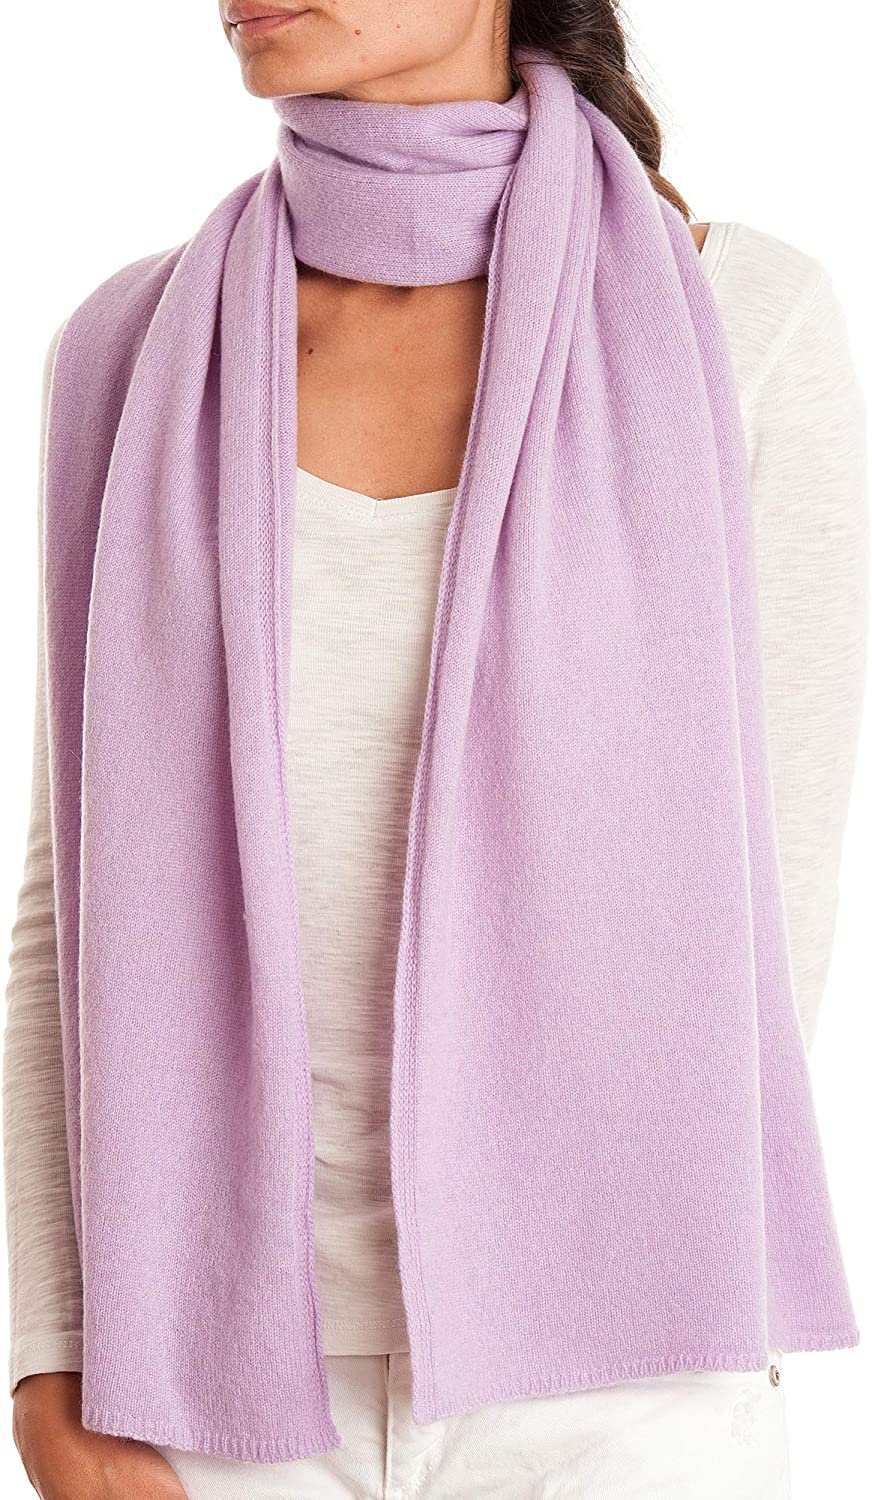 Dalle Piane Cashmere - Scarf 100% cashmere - Made in Italy - Woman/Man, Color: Lilac, One size